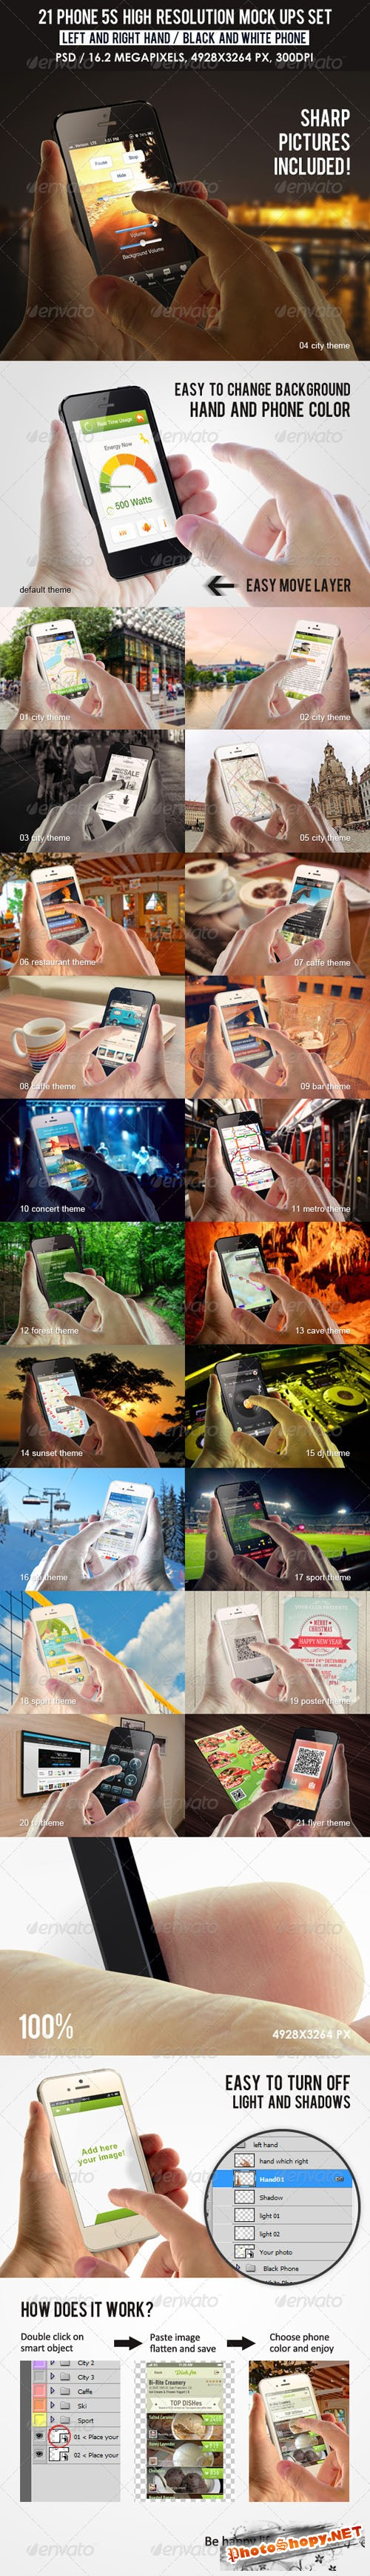 Graphicriver - 21 Phone 5s high resolution Mock Ups Set 7469693